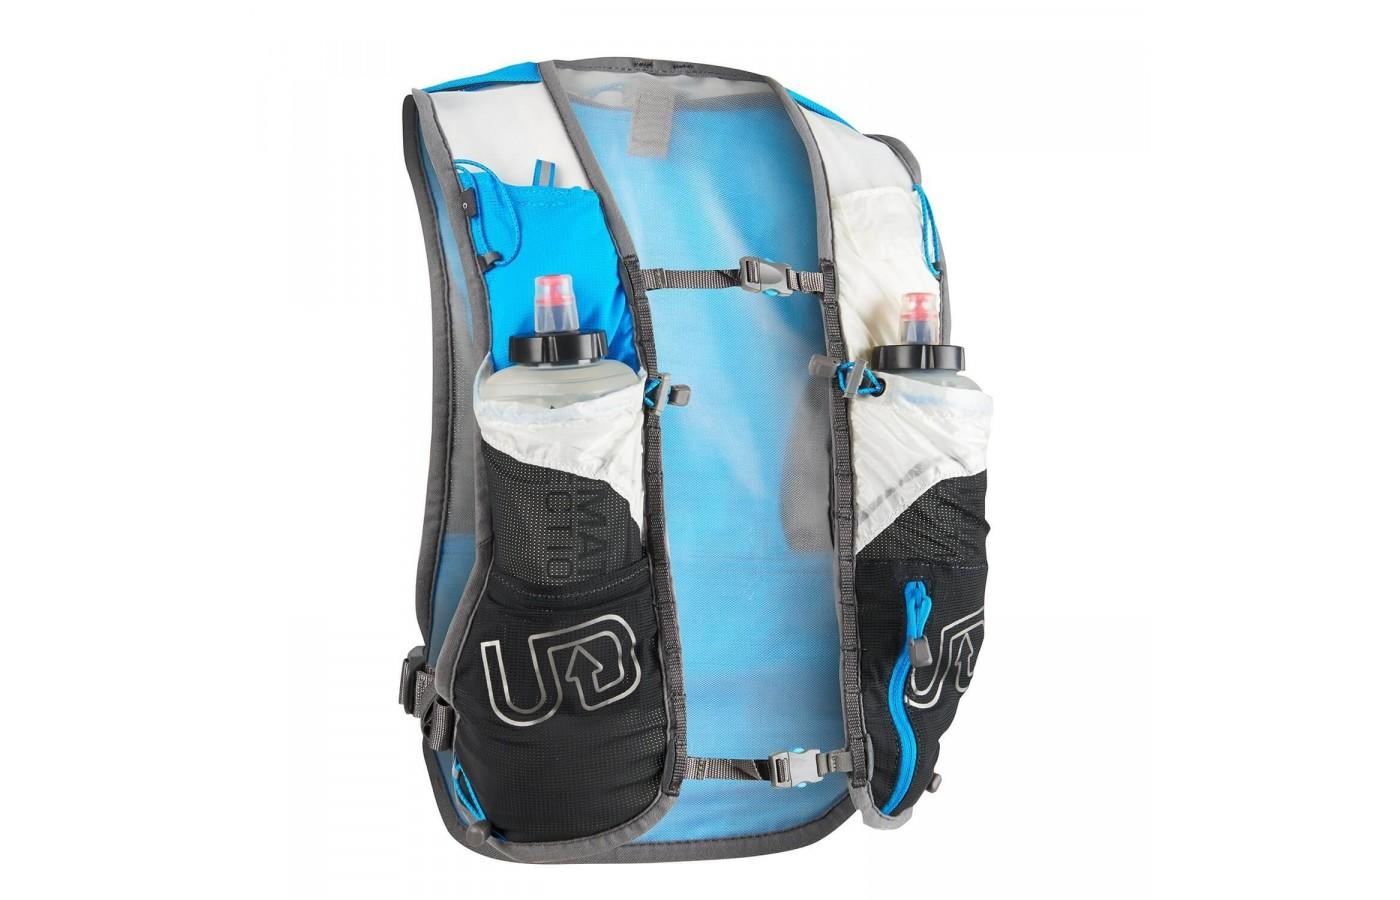 the Ultimate Direction SJ Ultra Vest 3.0 is incredibly lightweight and highly breathable